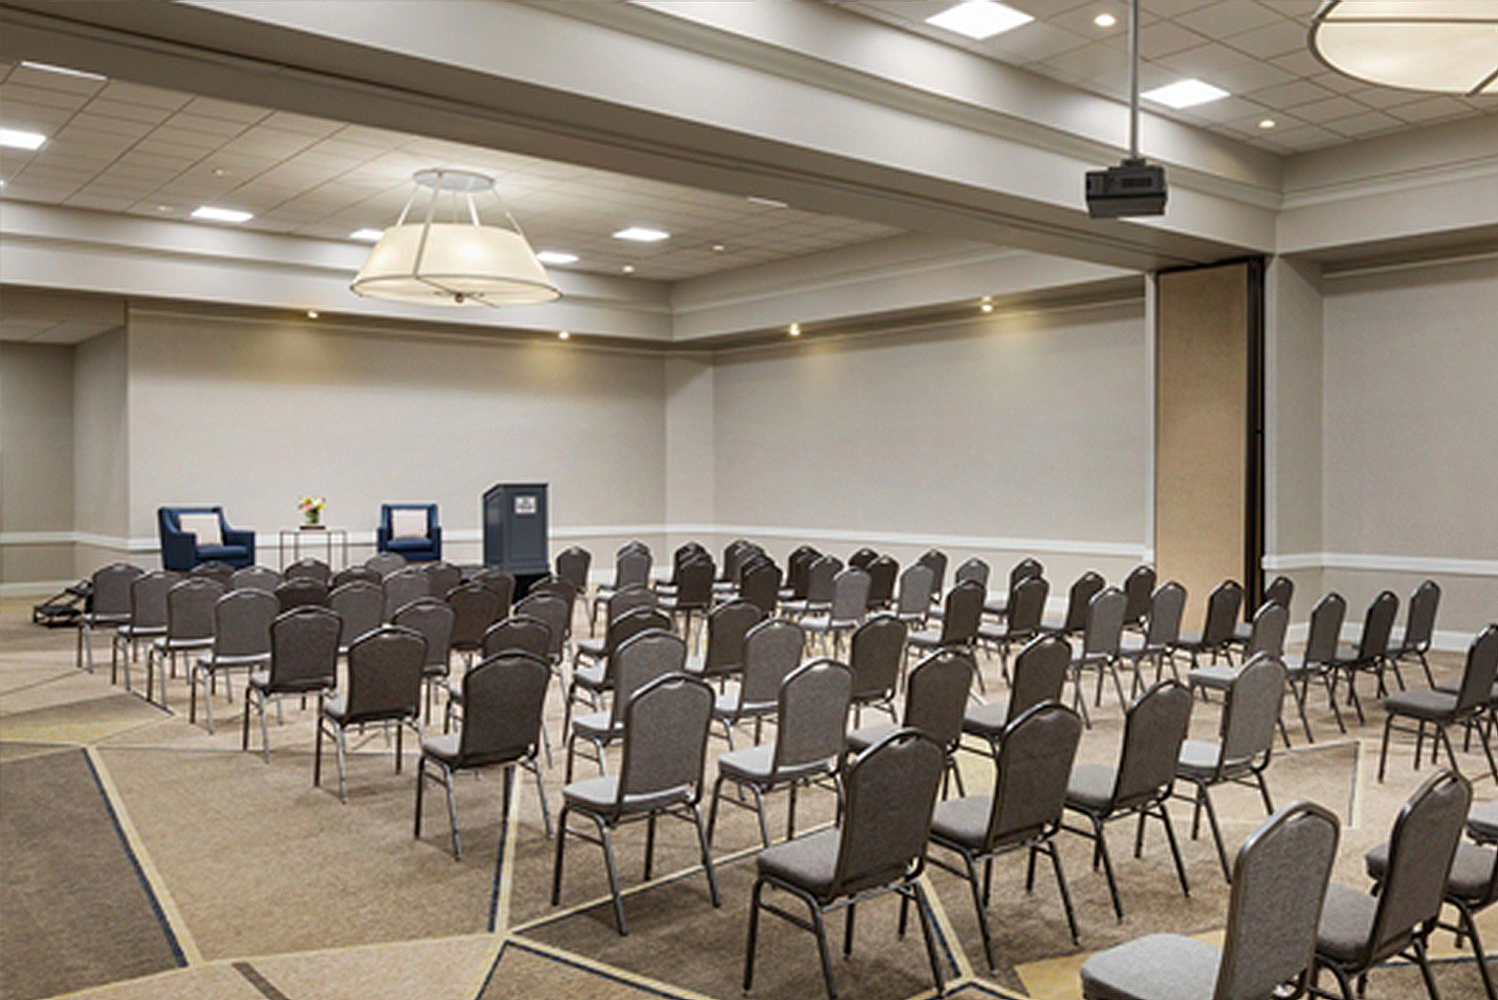 For events, the property has 20,000 square feet of flexible space, which can accommodate groups of up to 1,300.